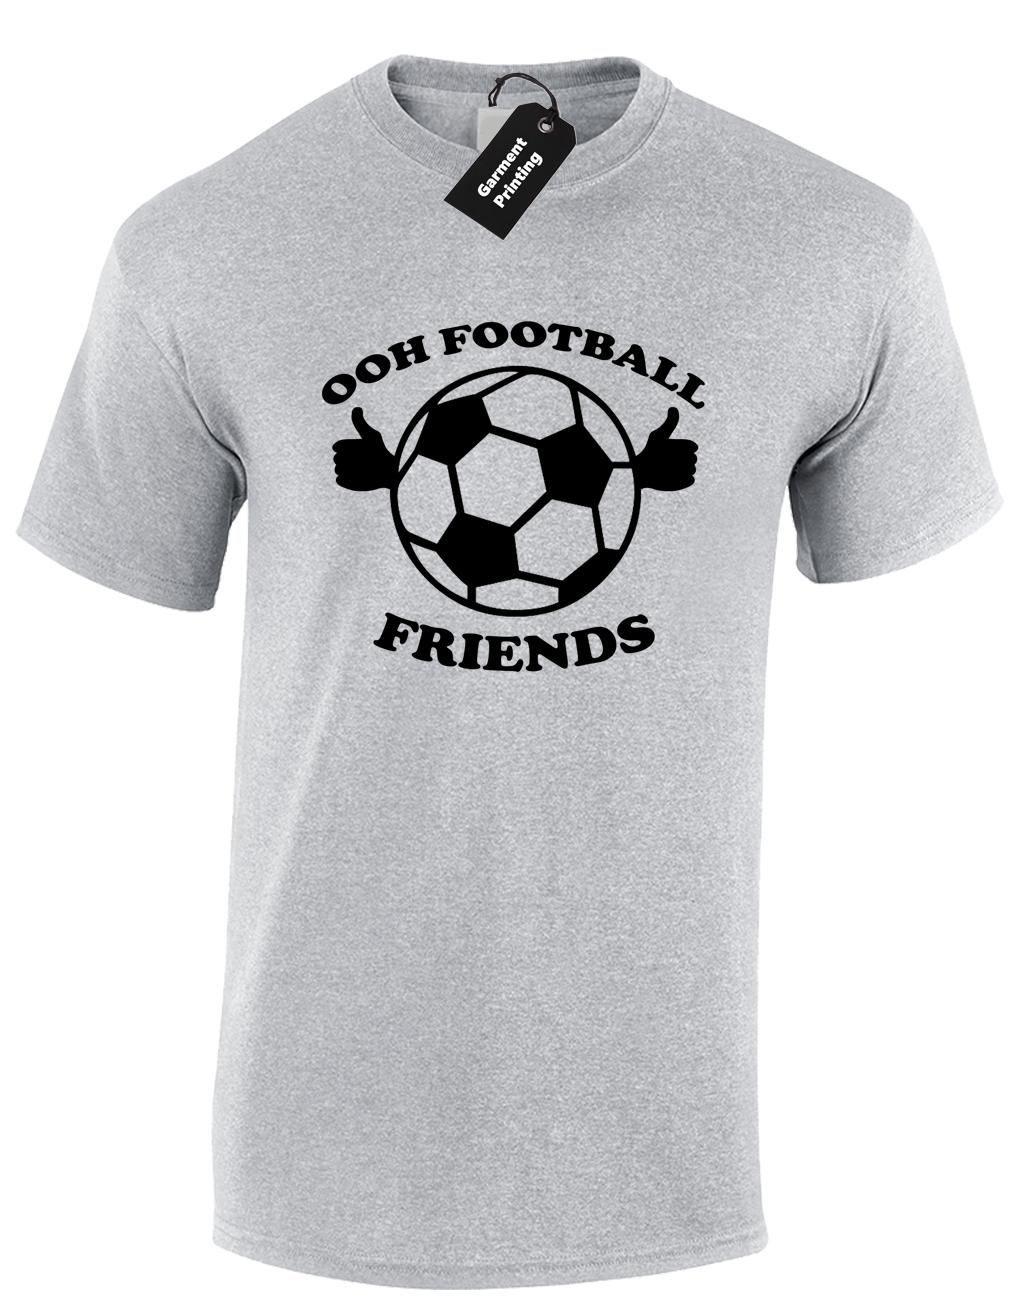 Funny Football Sayings For T Shirts - DREAMWORKS